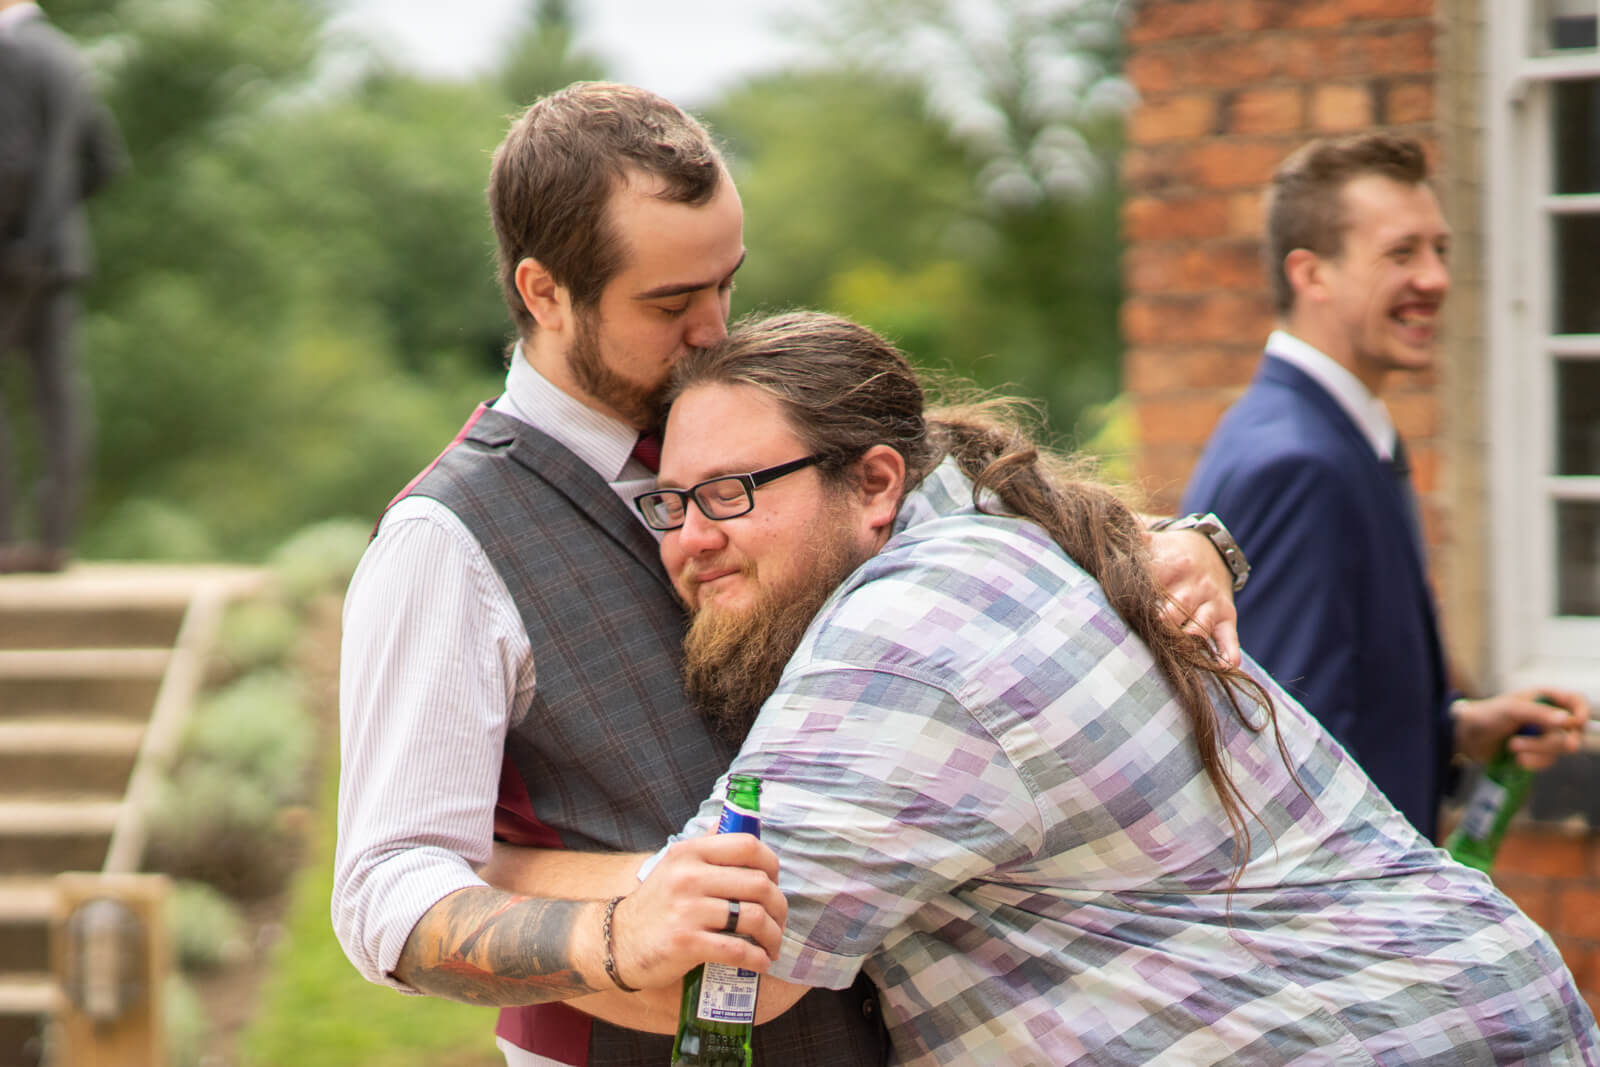 Two male guests mess about and hug each other during the reception